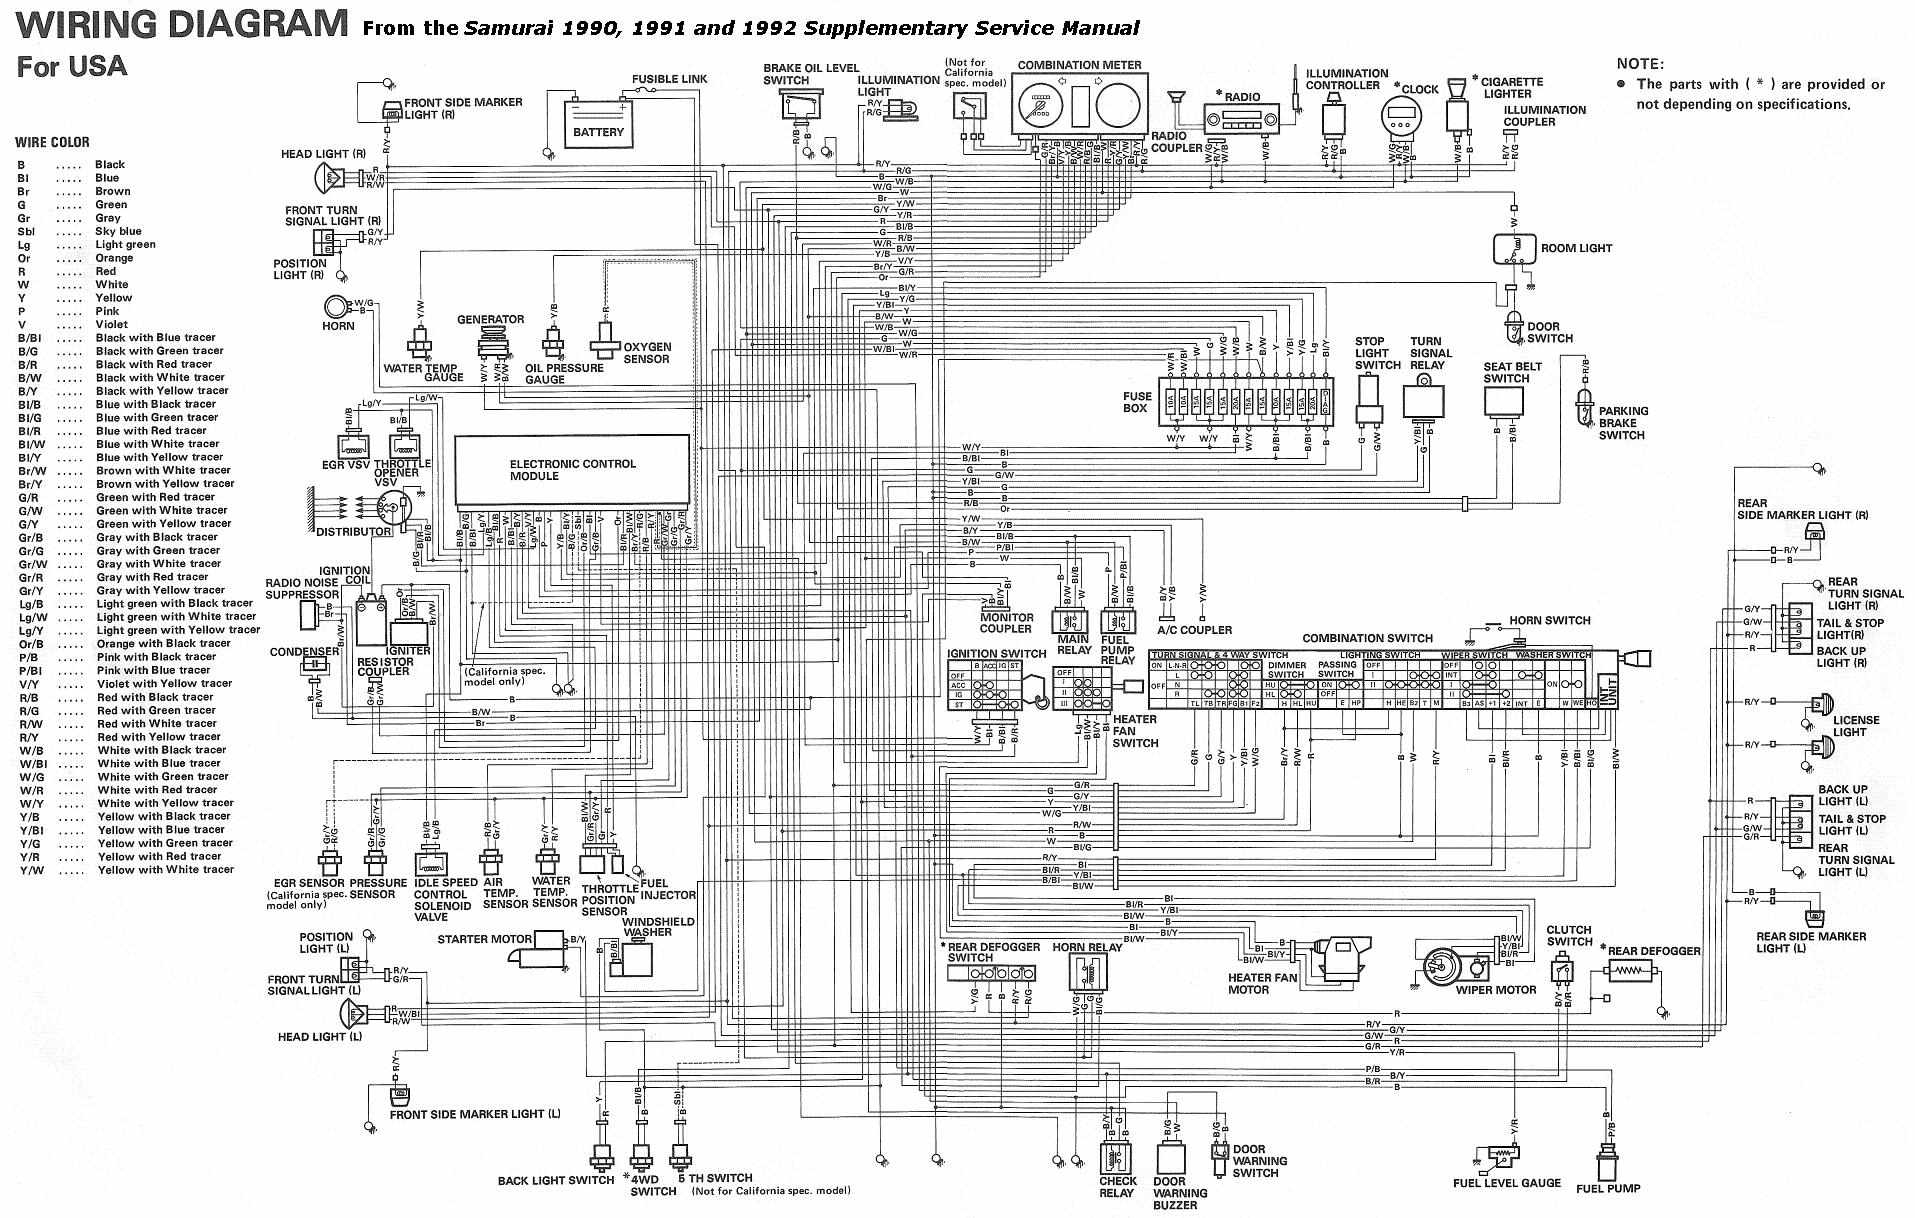 Suzuki on 2001 suburban radio wiring diagram